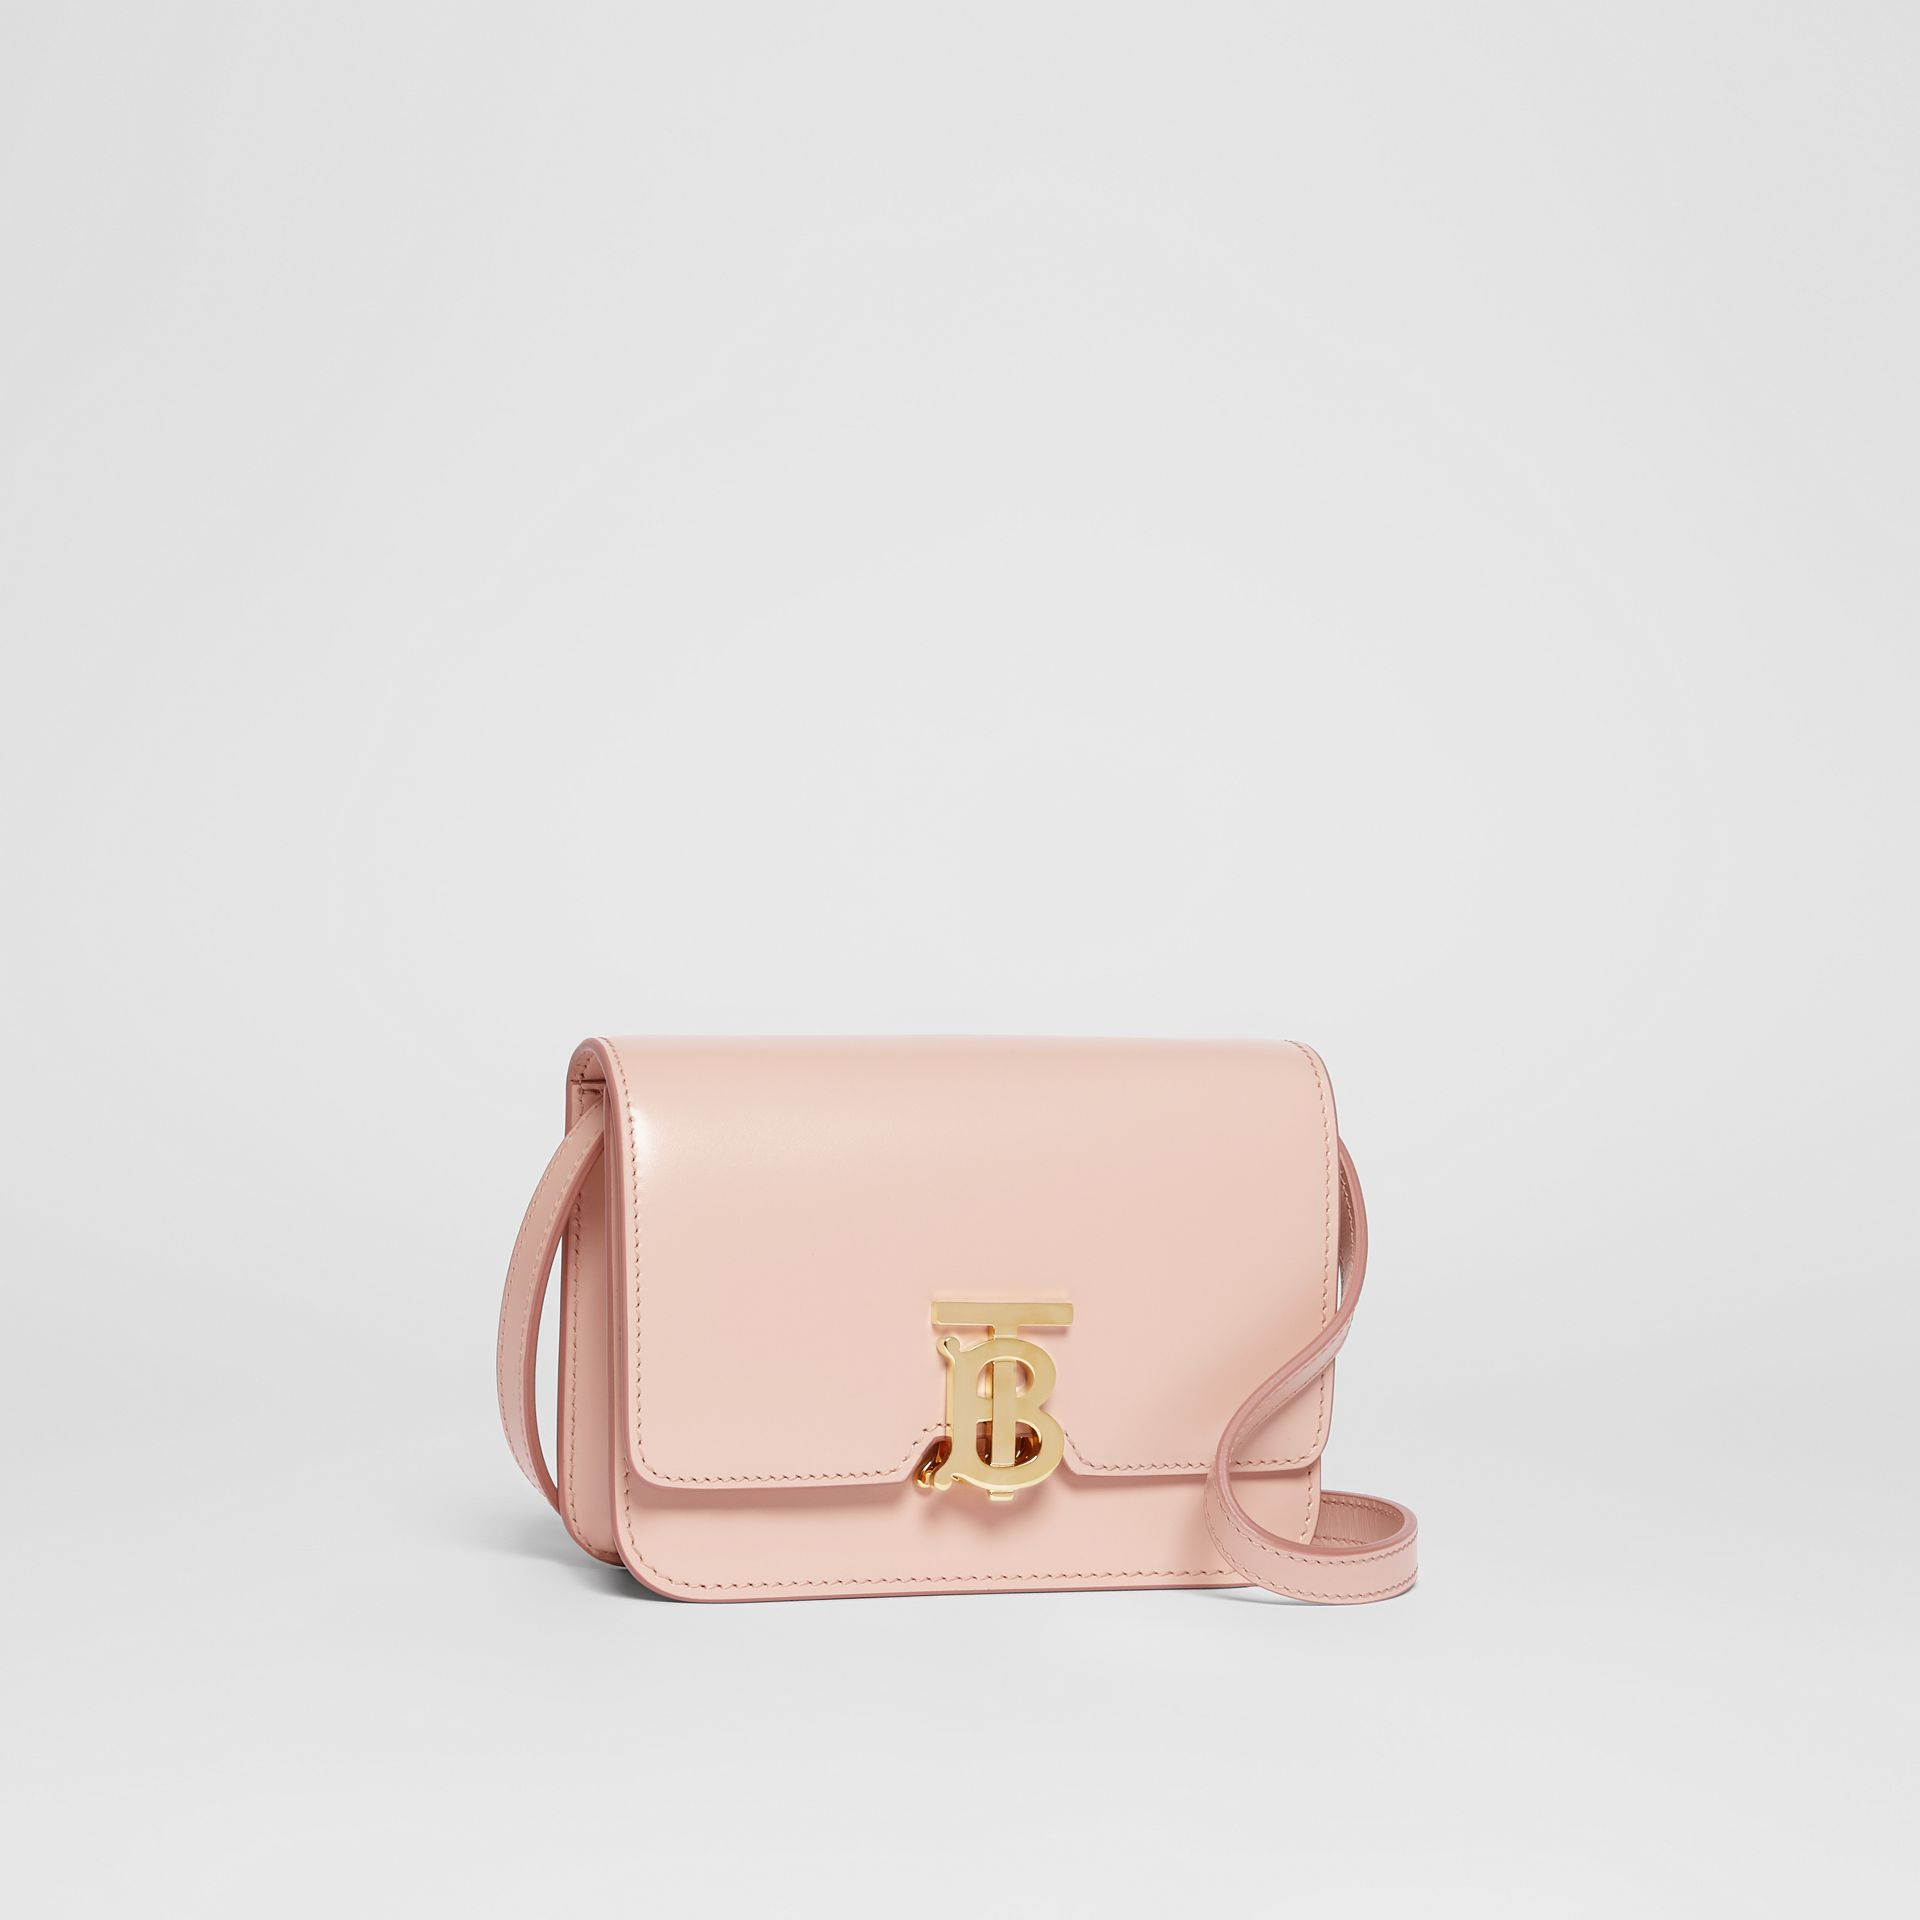 Mini Leather TB Bag in Rose Beige - Women | Burberry Hong Kong S.A.R - gallery image 6